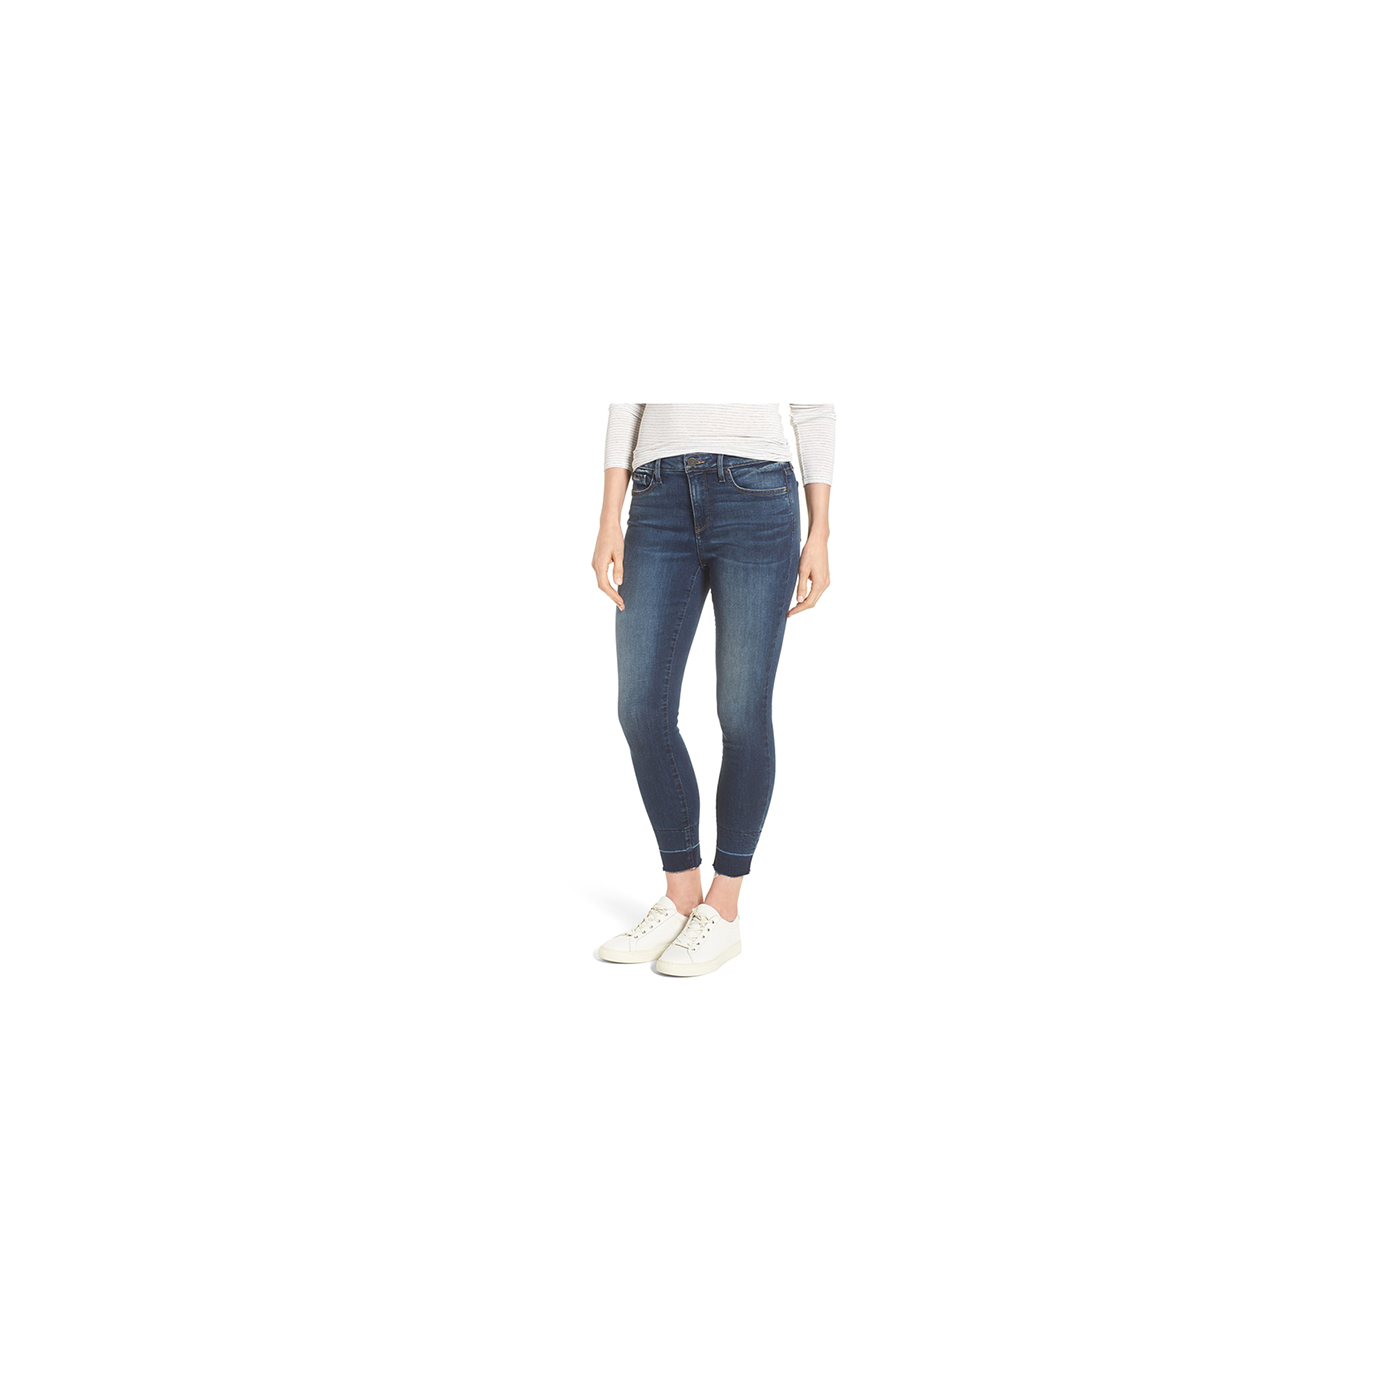 The Bestselling Jeans on Real Simple Are 34% Off at the Nordstrom Anniversary Sale